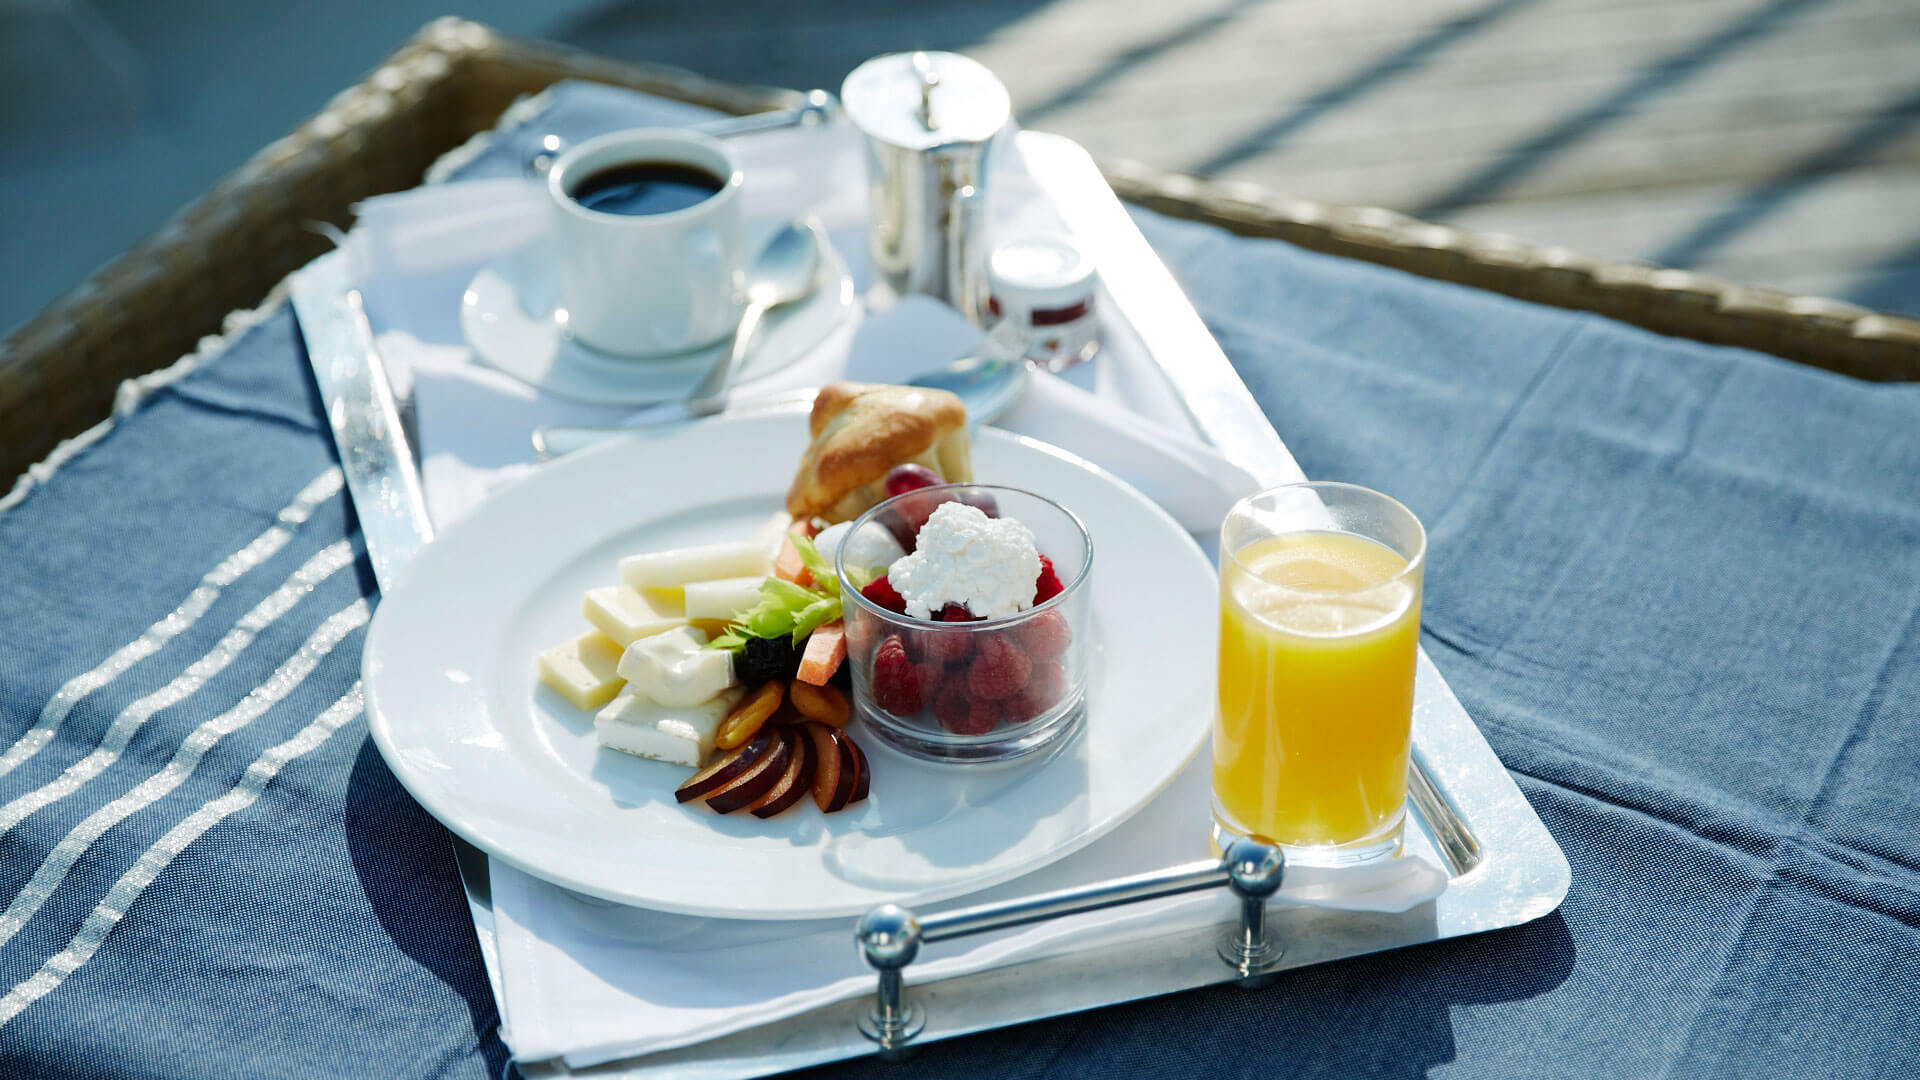 Seabourn Encore Interior In suite food on tray.jpg